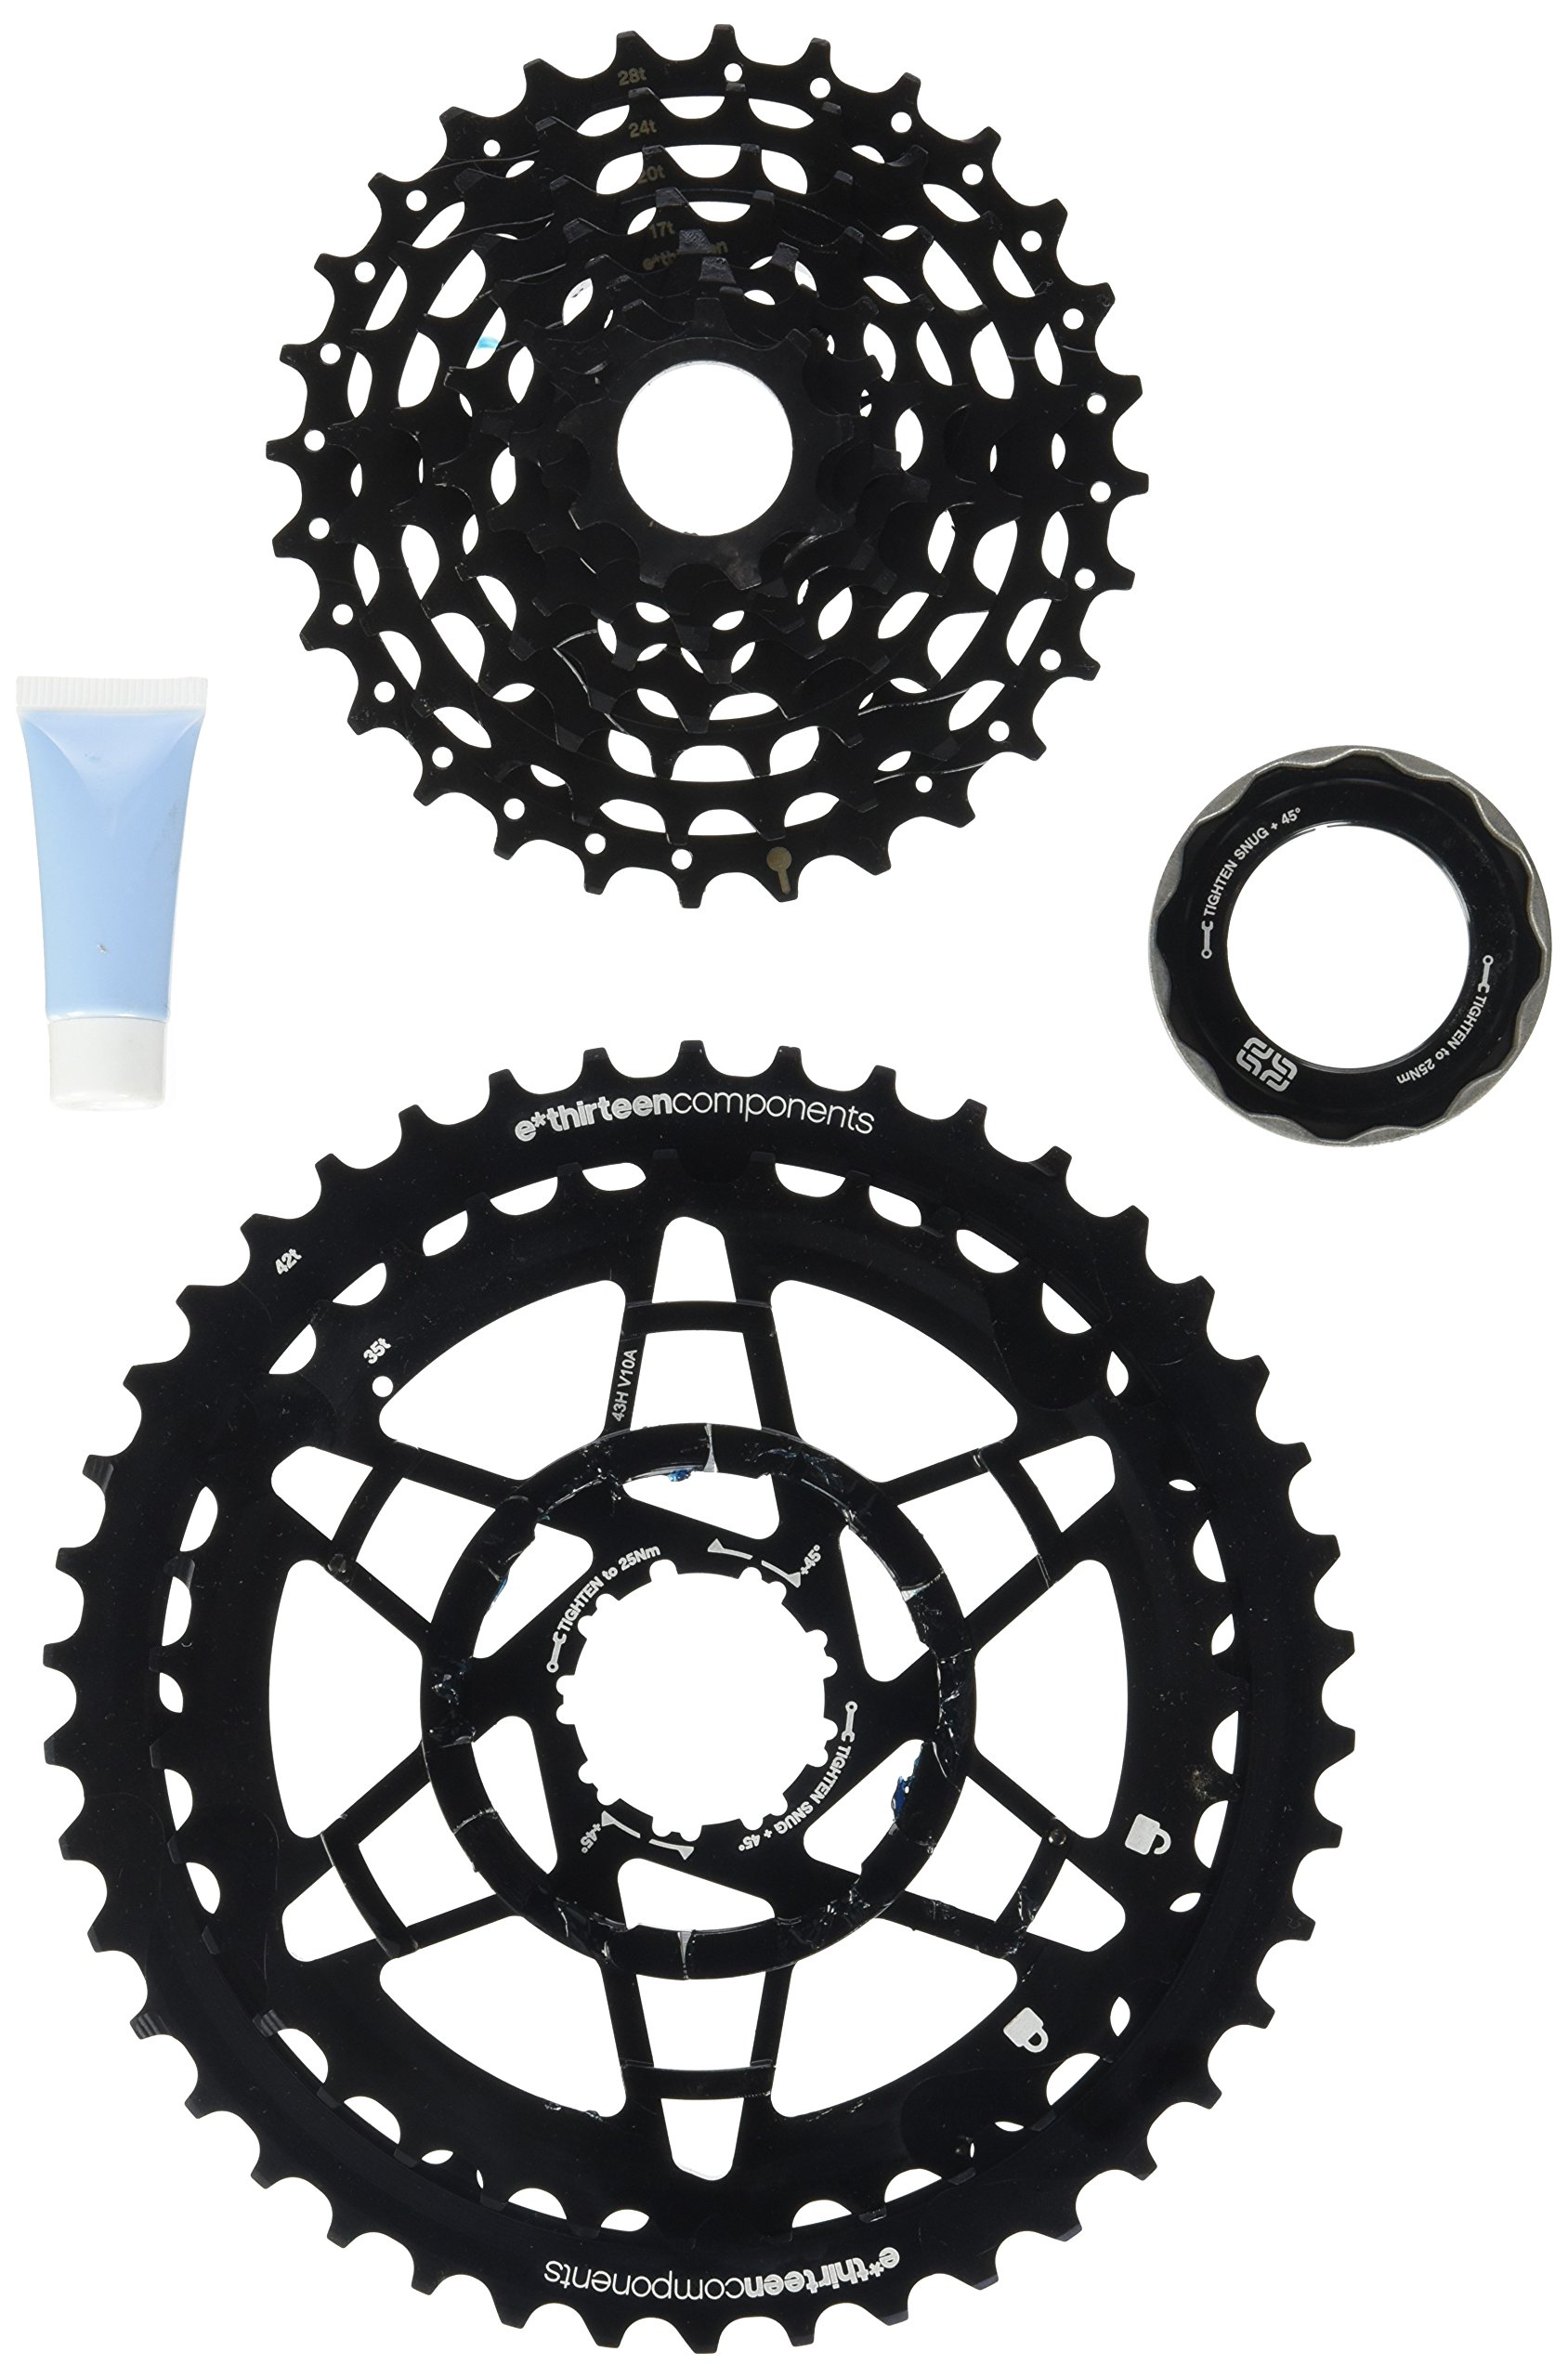 e*thirteen TRS Plus 10 speed 9-42t Cassette for XD Driver Freehubs, Black